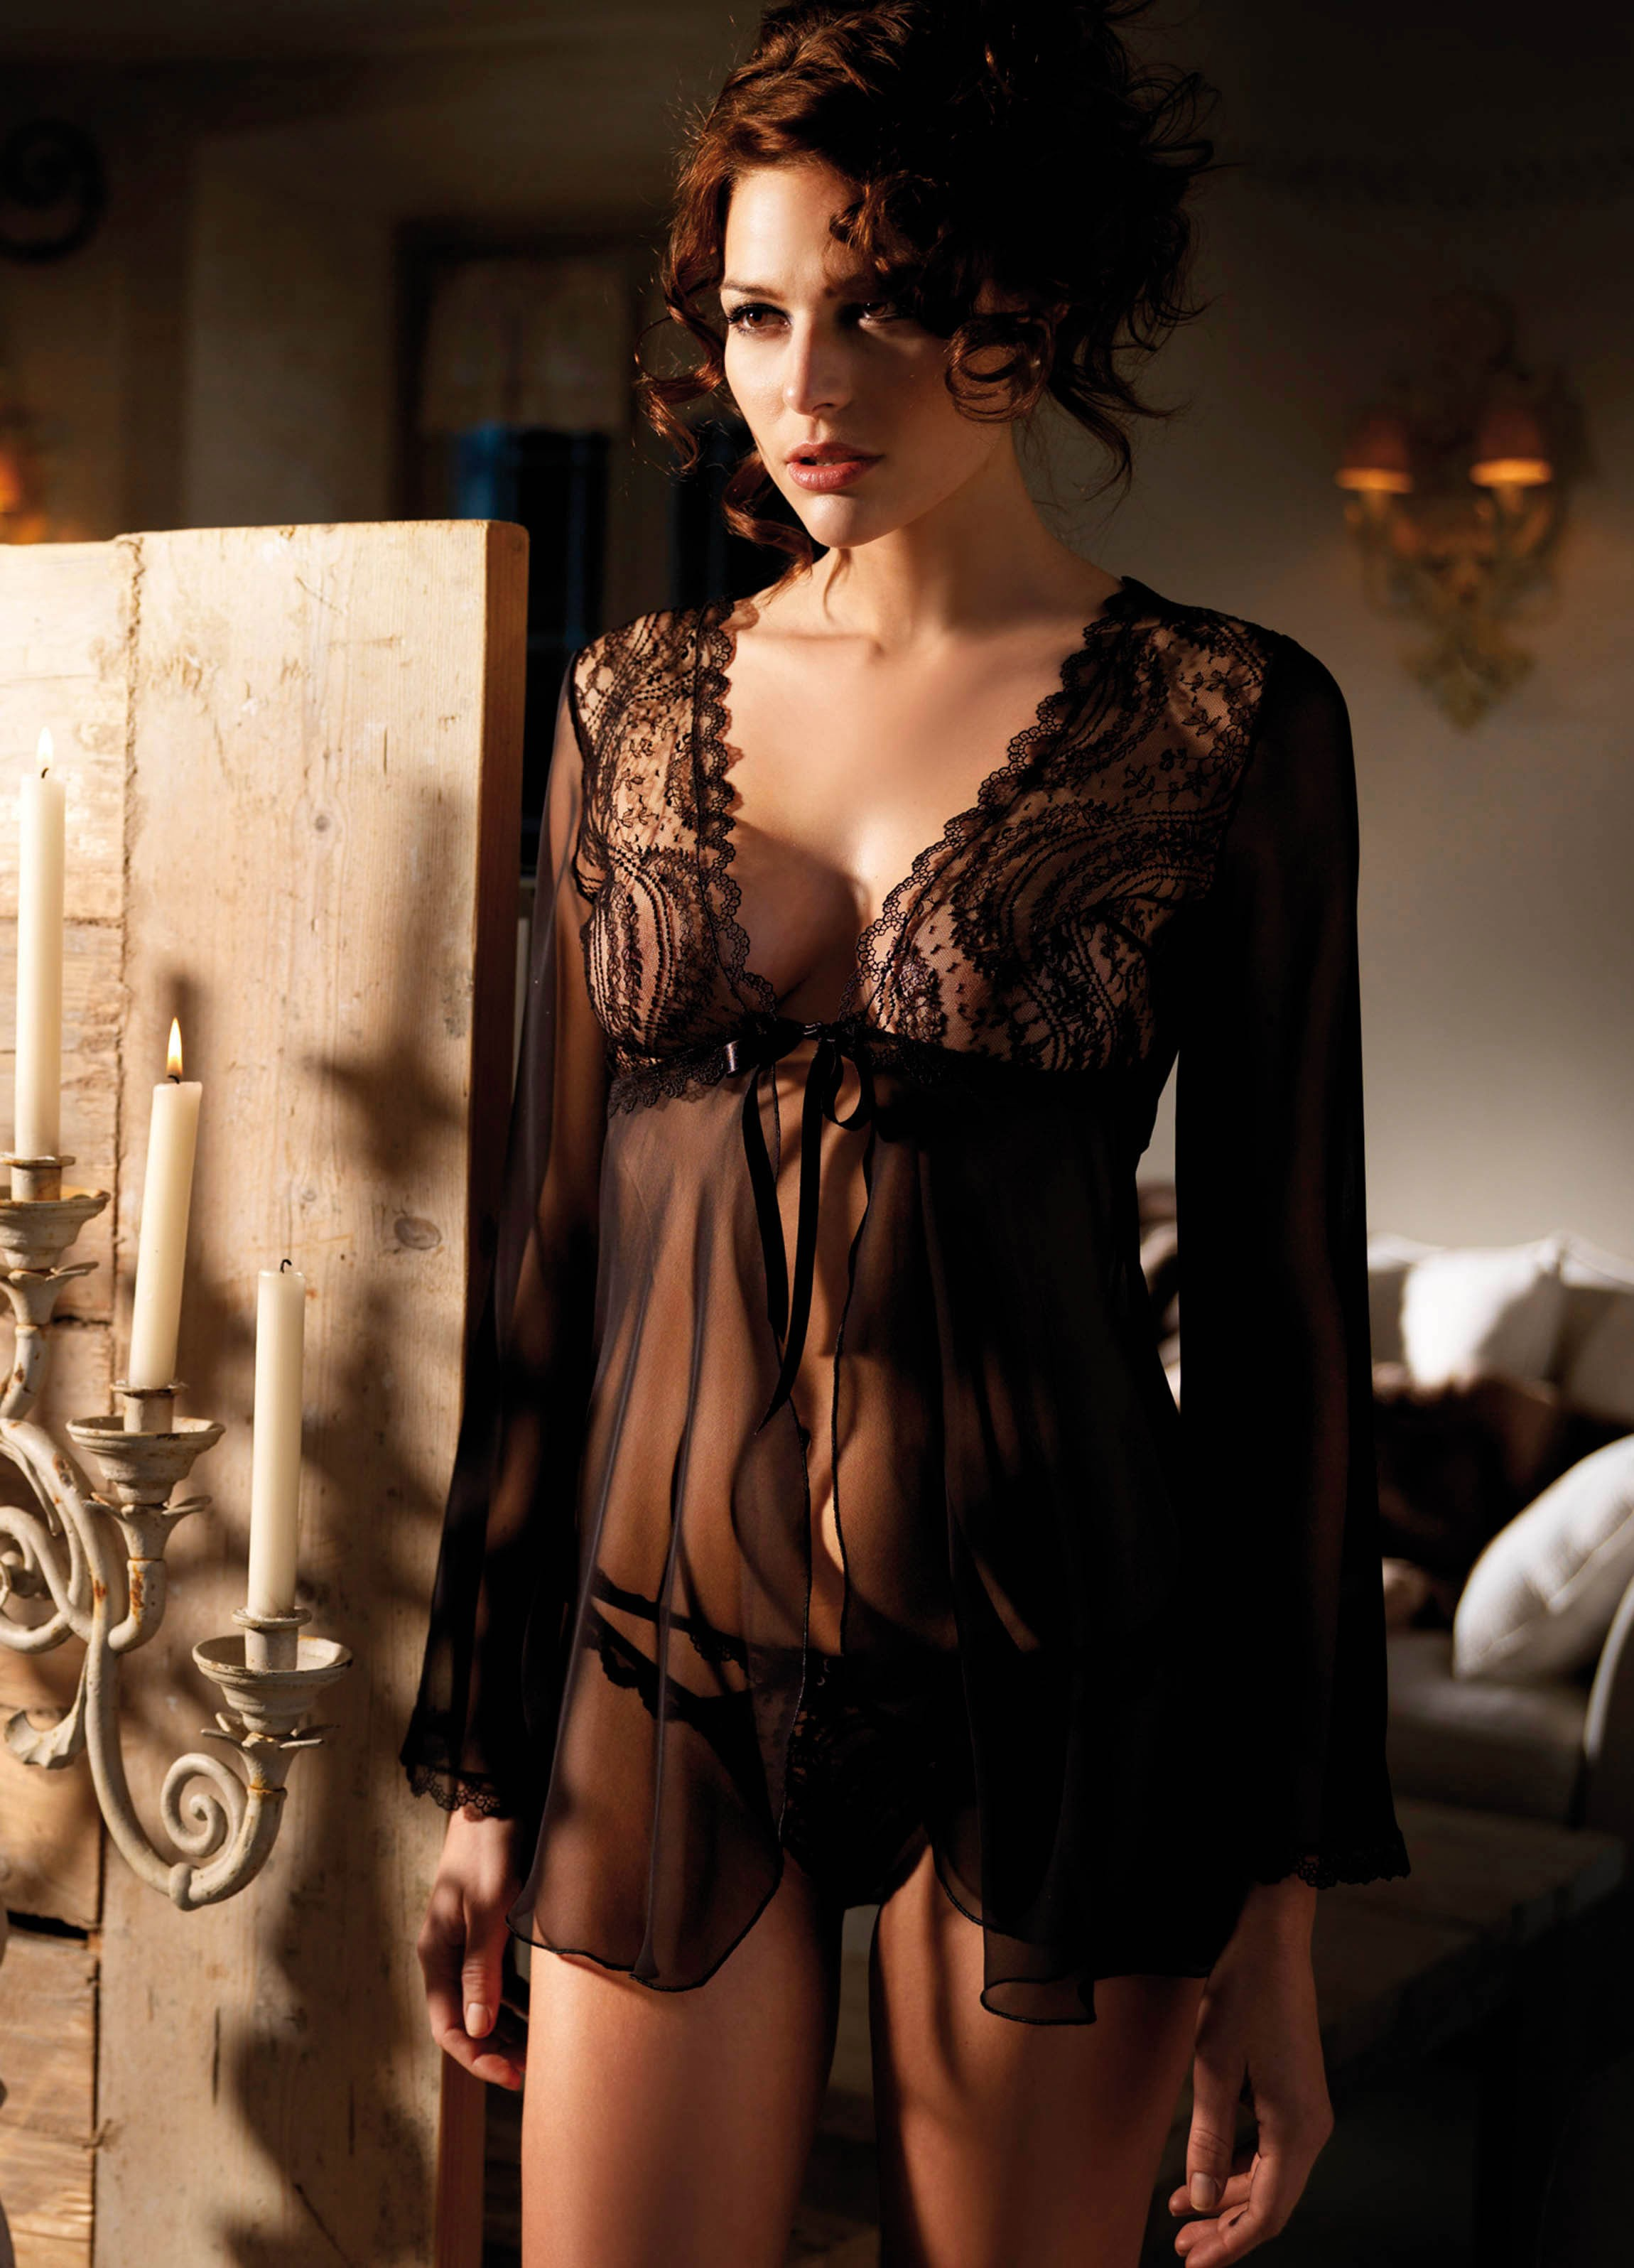 Lydie-Pages-Christies-lingerie-1